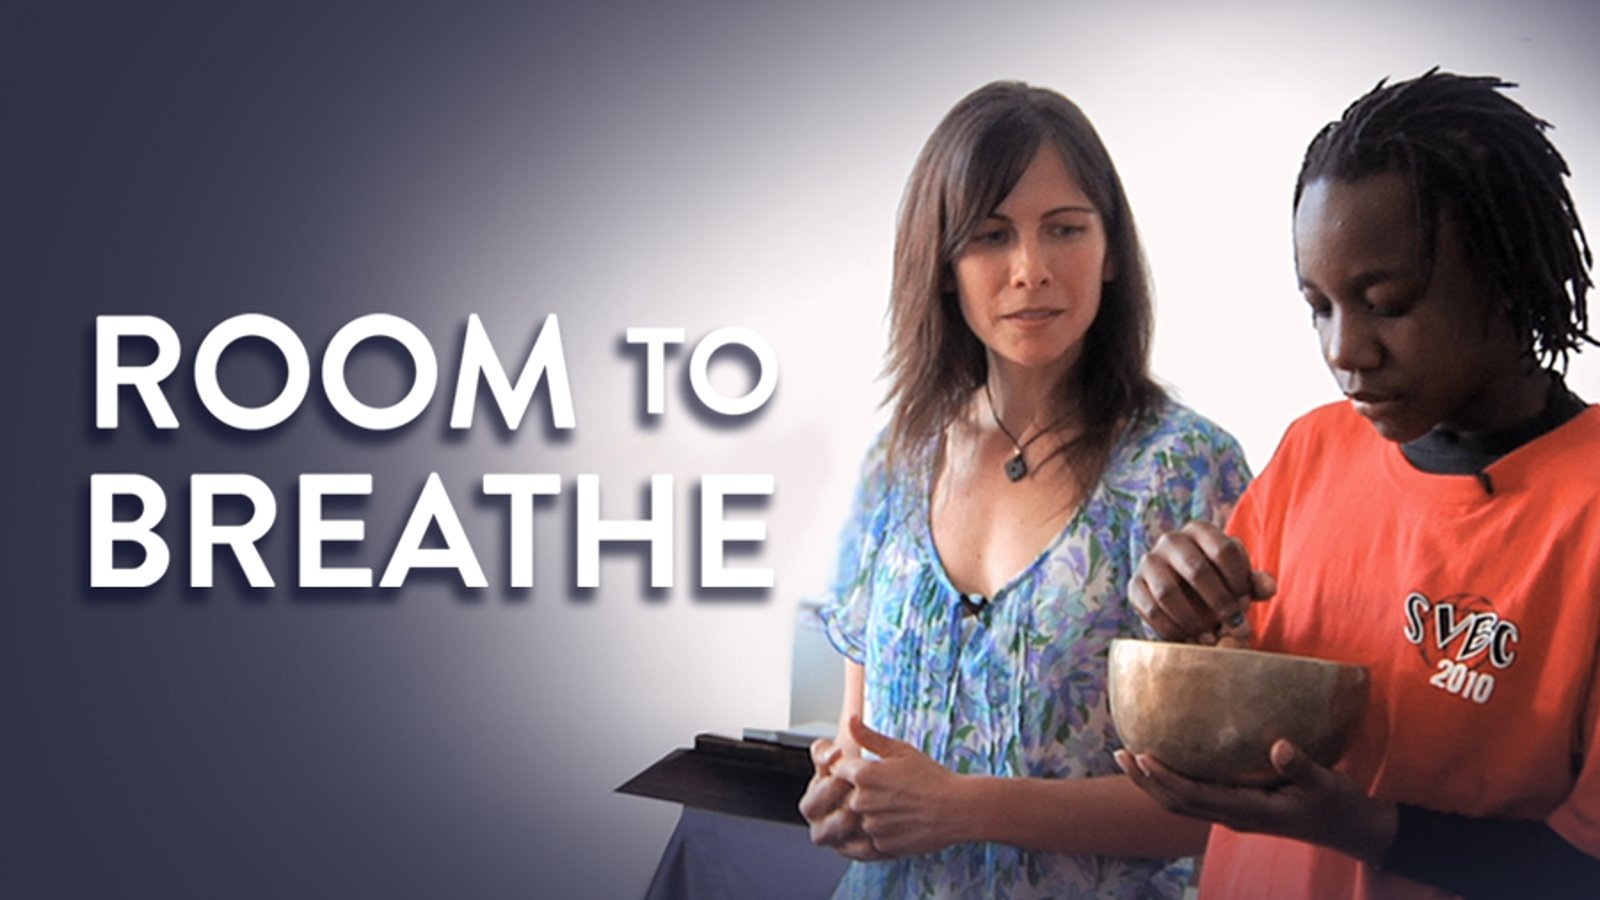 Room to Breathe: Mindfulness in the Classroom